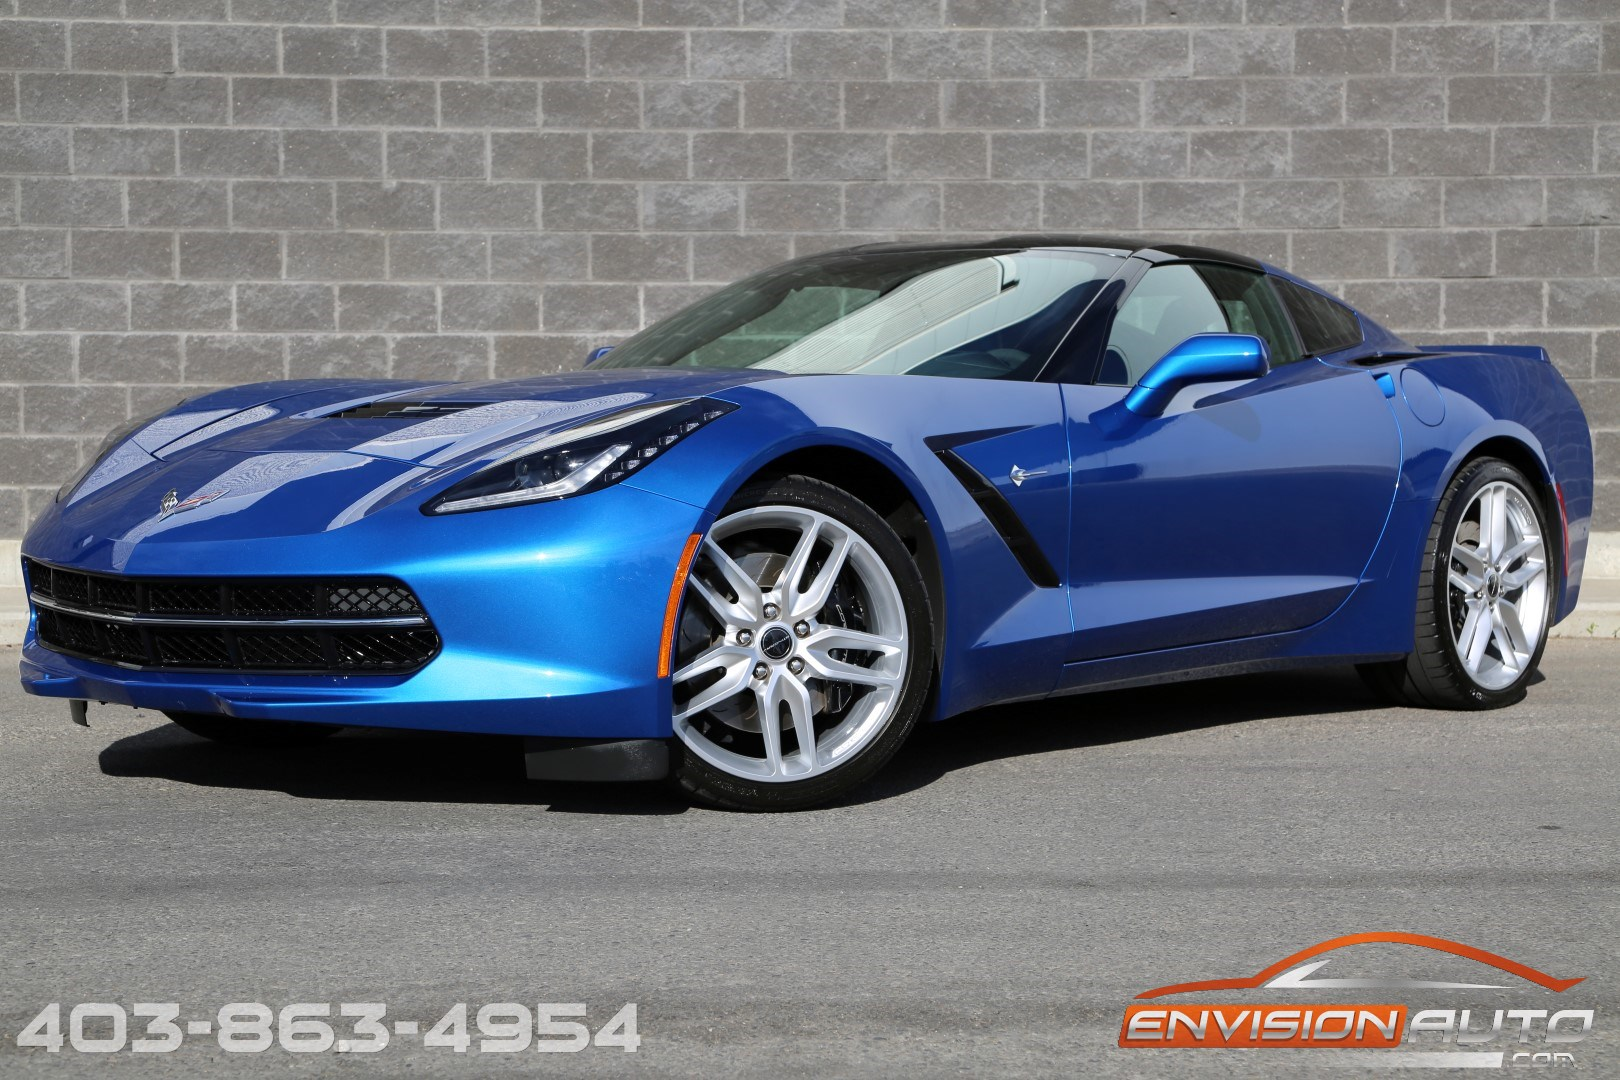 2015 chevrolet corvette stingray 3lt z51 competition seats glass roof envision auto. Black Bedroom Furniture Sets. Home Design Ideas